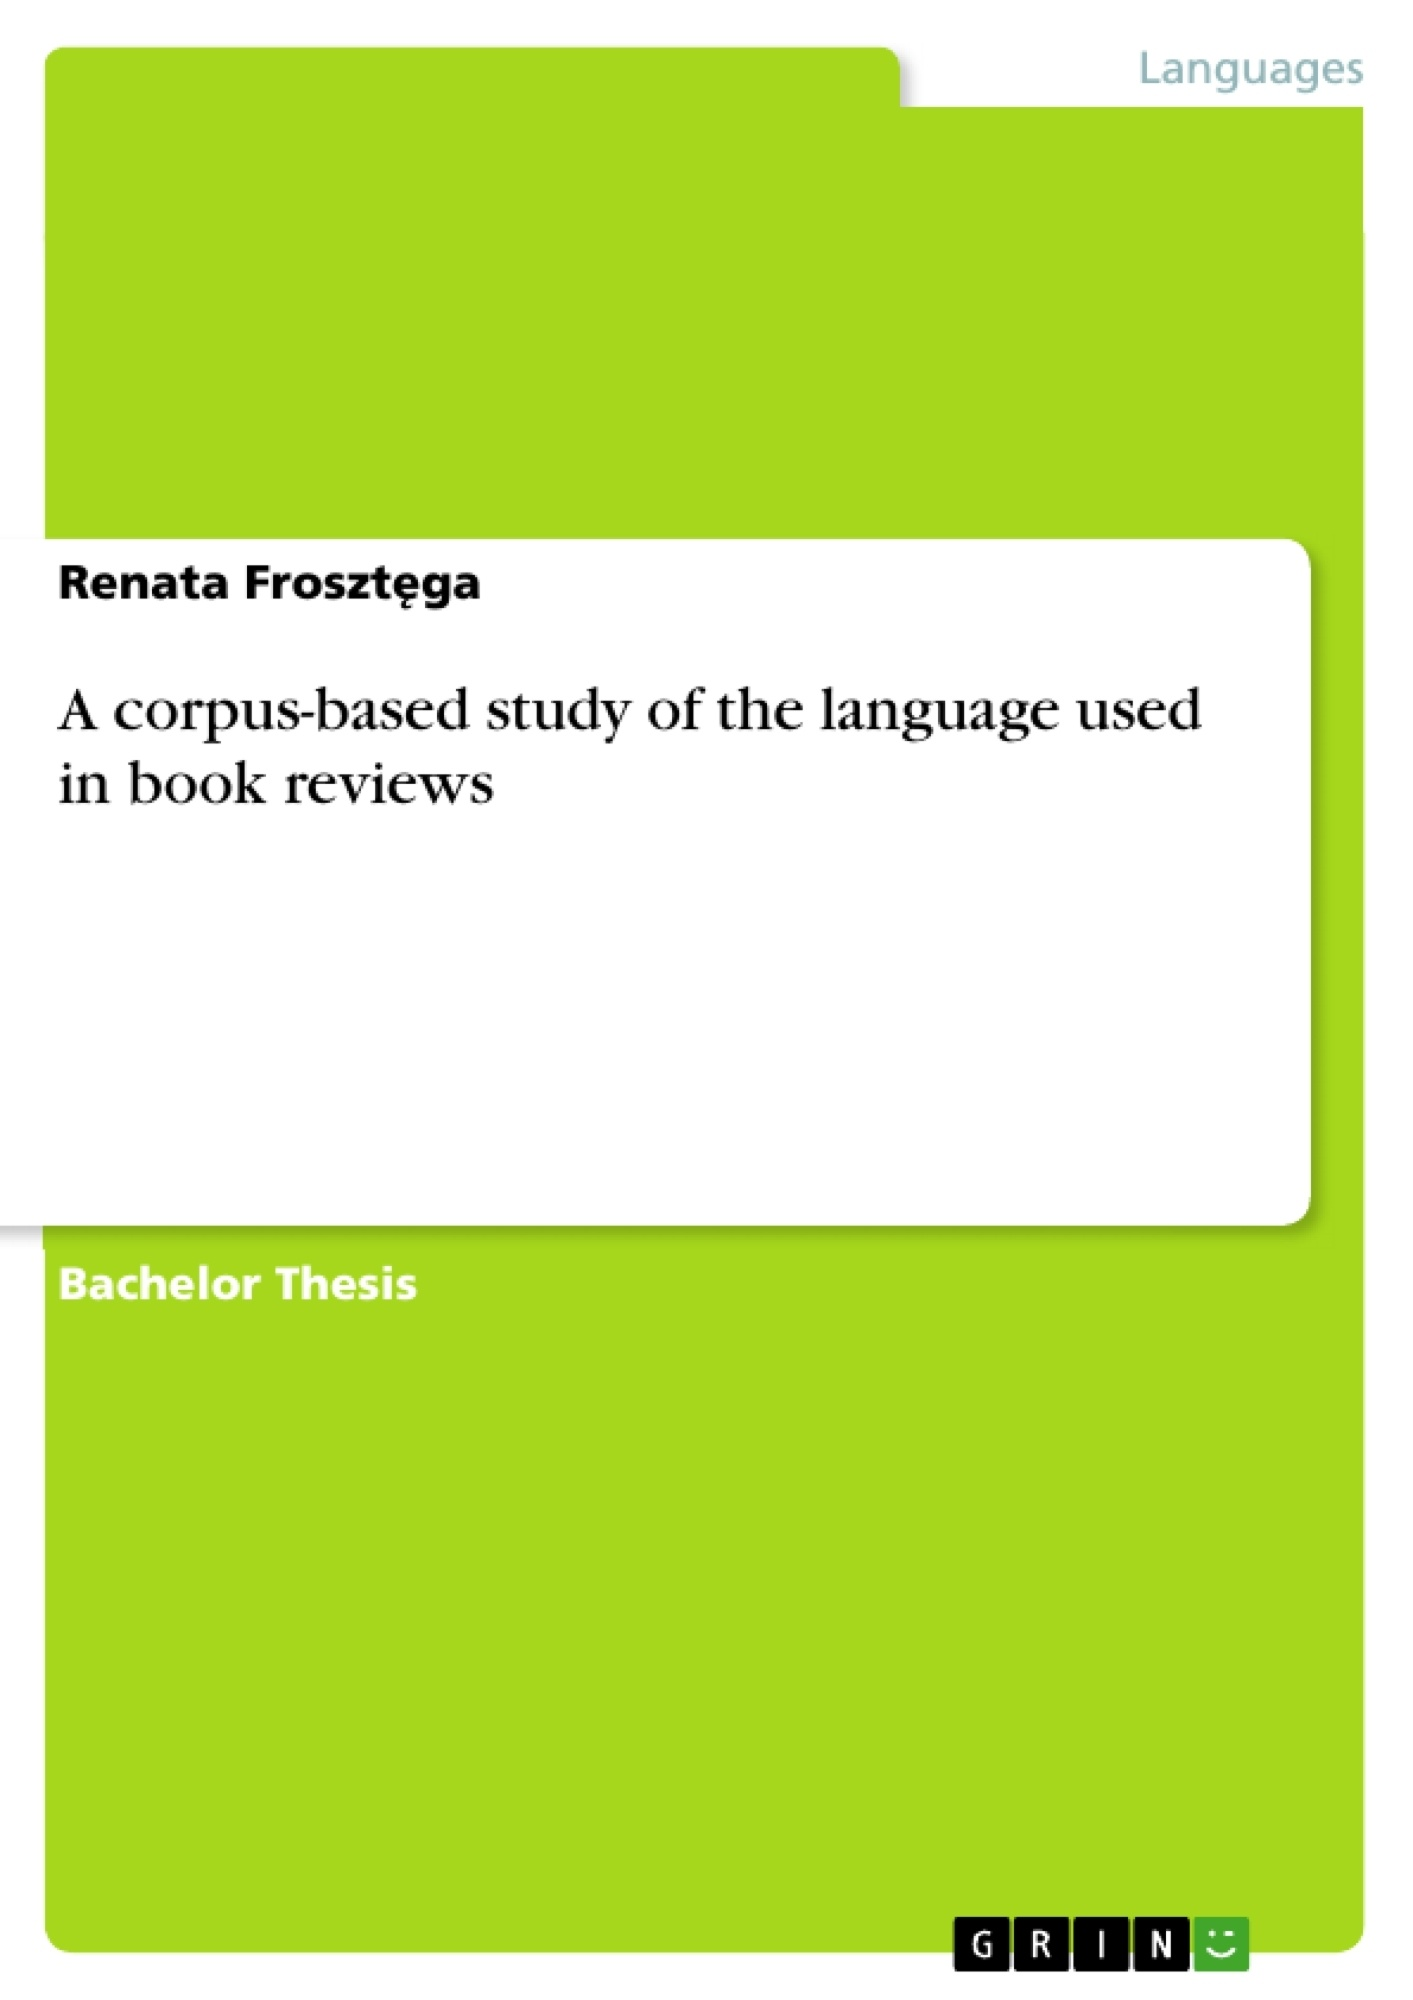 Title: A corpus-based study of the language used in book reviews